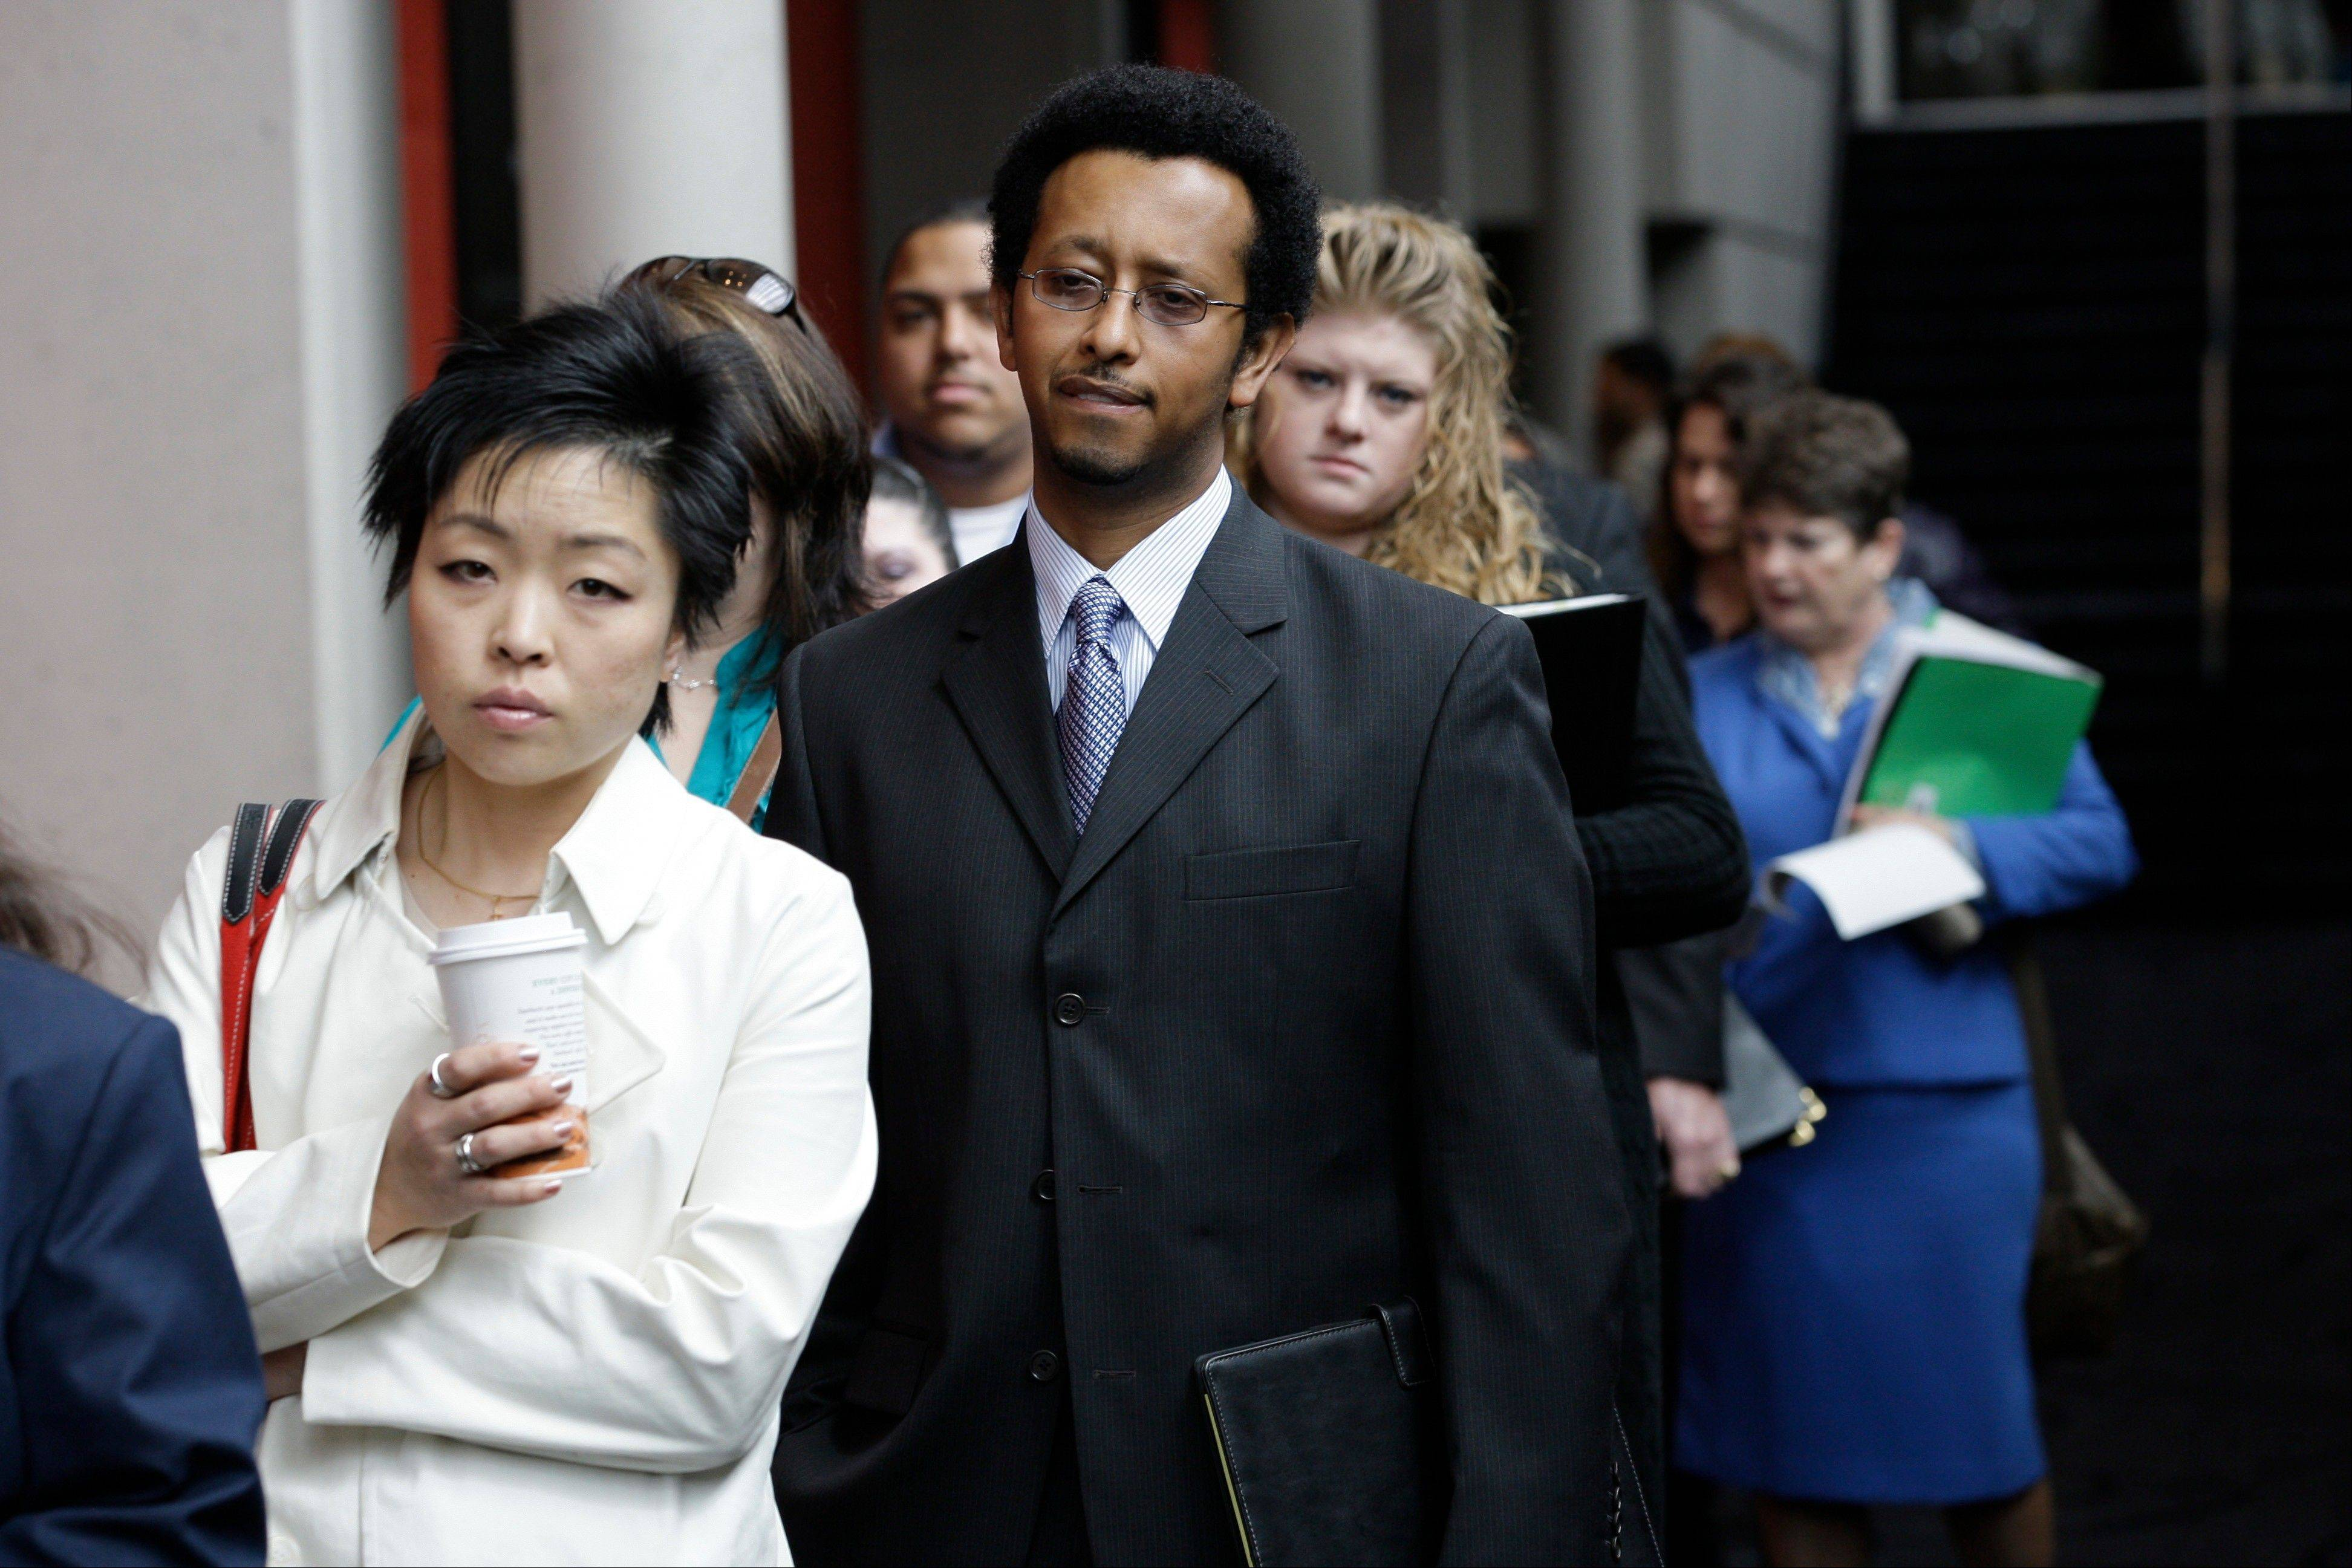 In this Tuesday, April 27, 2010, photo, Job-seekers, including Sophonias Gizaw, center, of Seattle, wait in line to attend a job fair, in Tacoma, Wash.